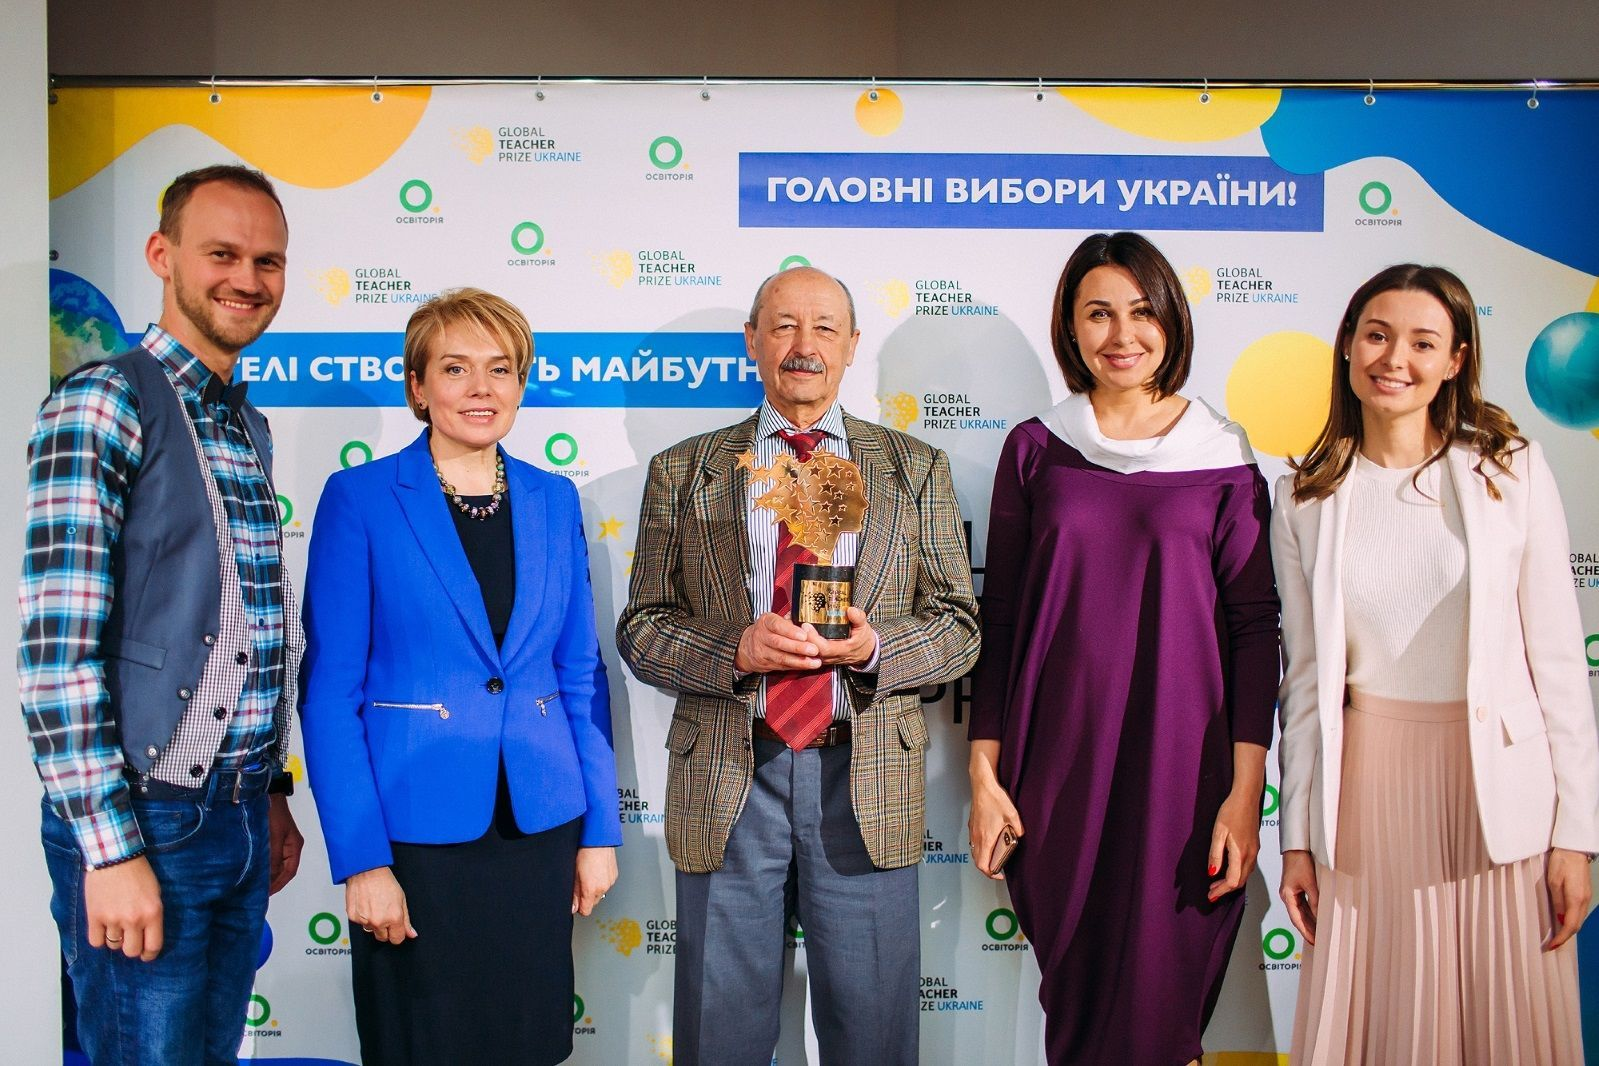 Наталія Мосейчук Global Teacher Prize Ukraine